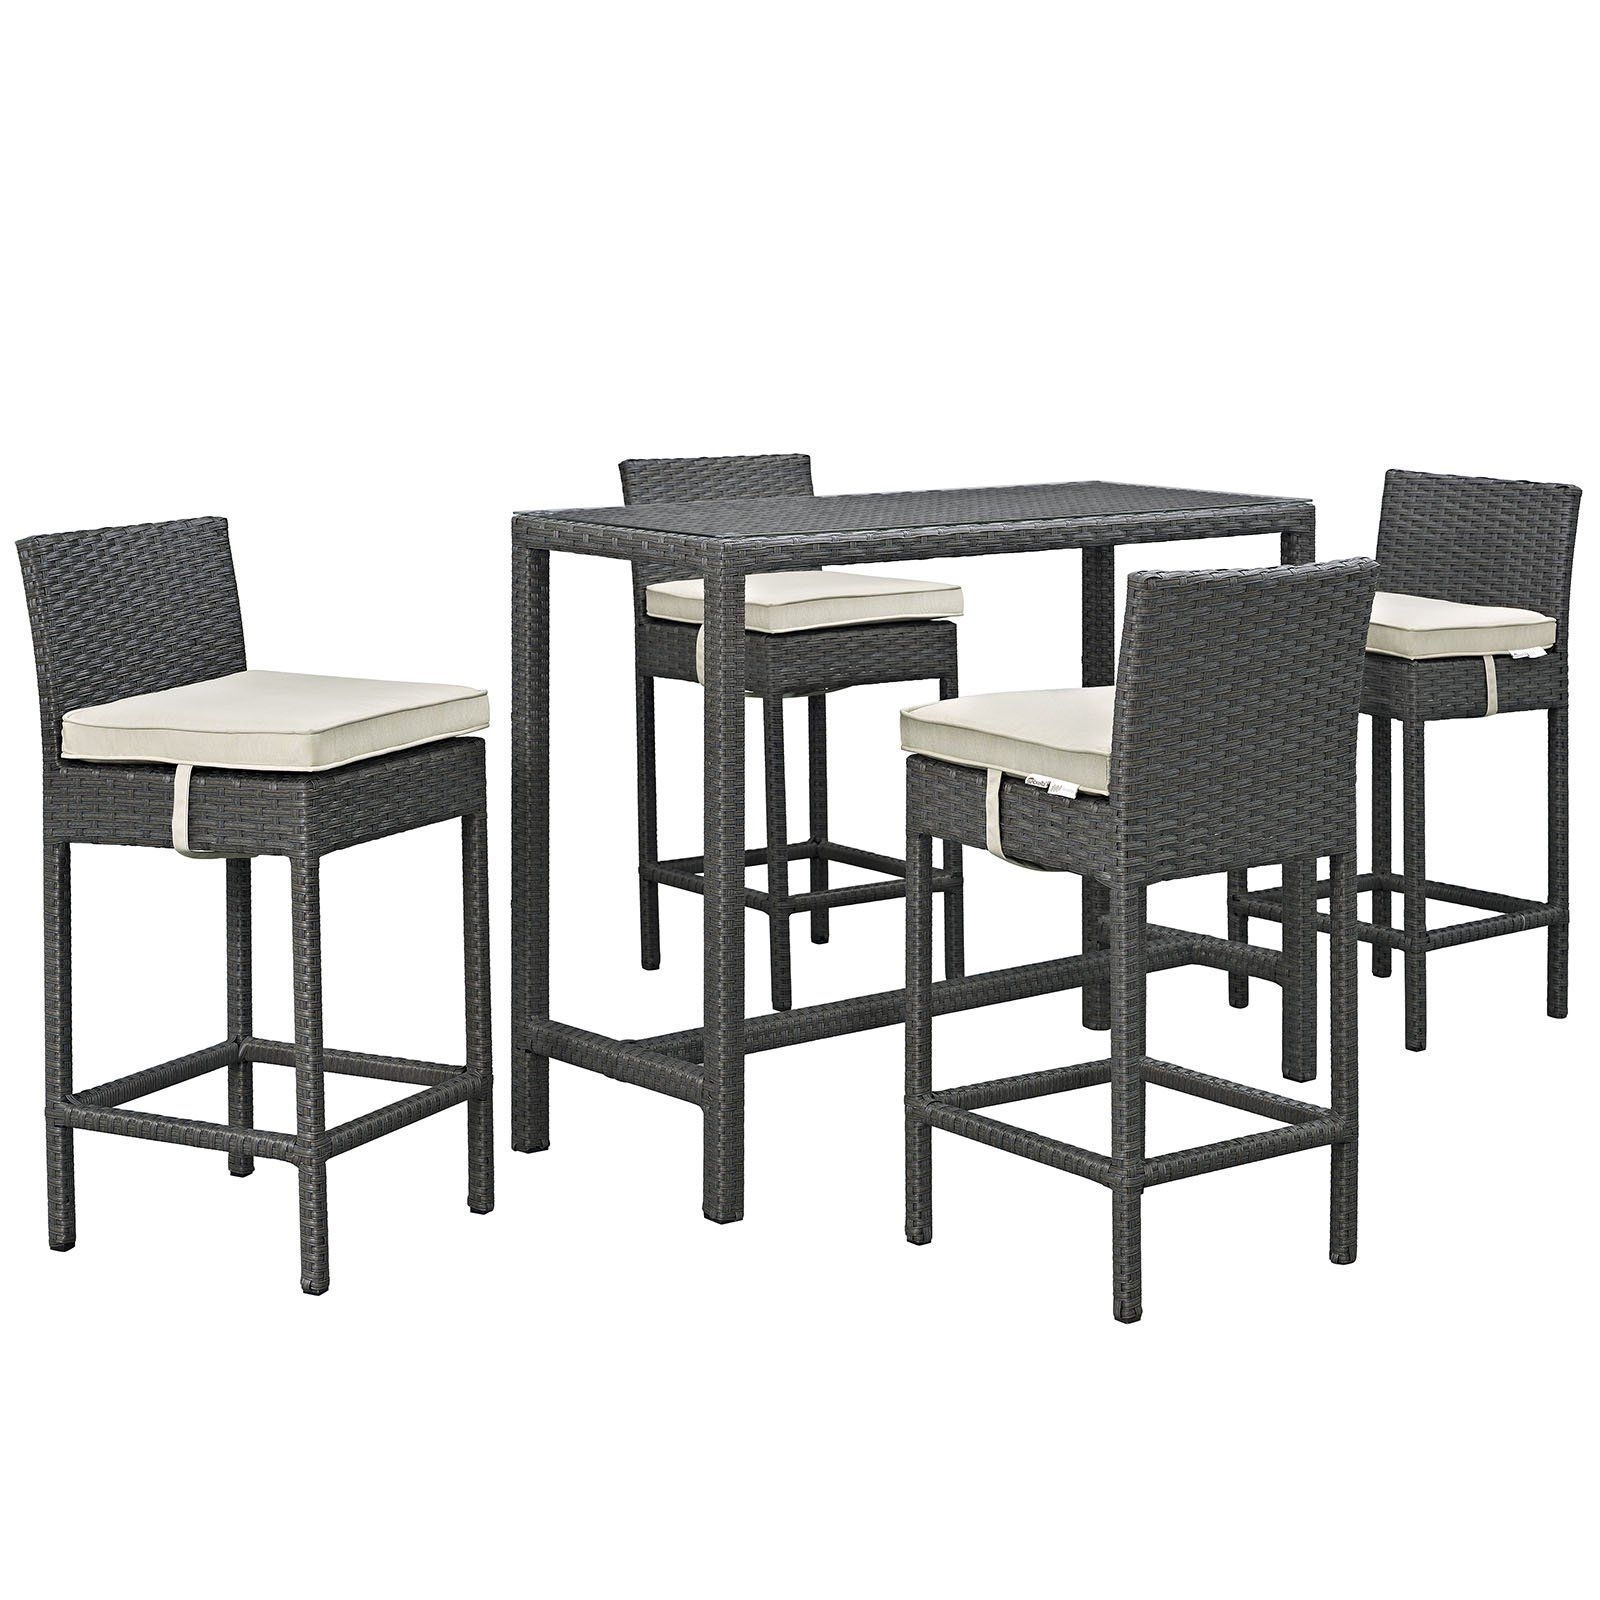 Sojourn 5 Piece Outdoor Patio Rattan Sunbrella Pub Set | Pub Set And Intended For Newest Rocco 9 Piece Extension Counter Sets (Image 16 of 20)